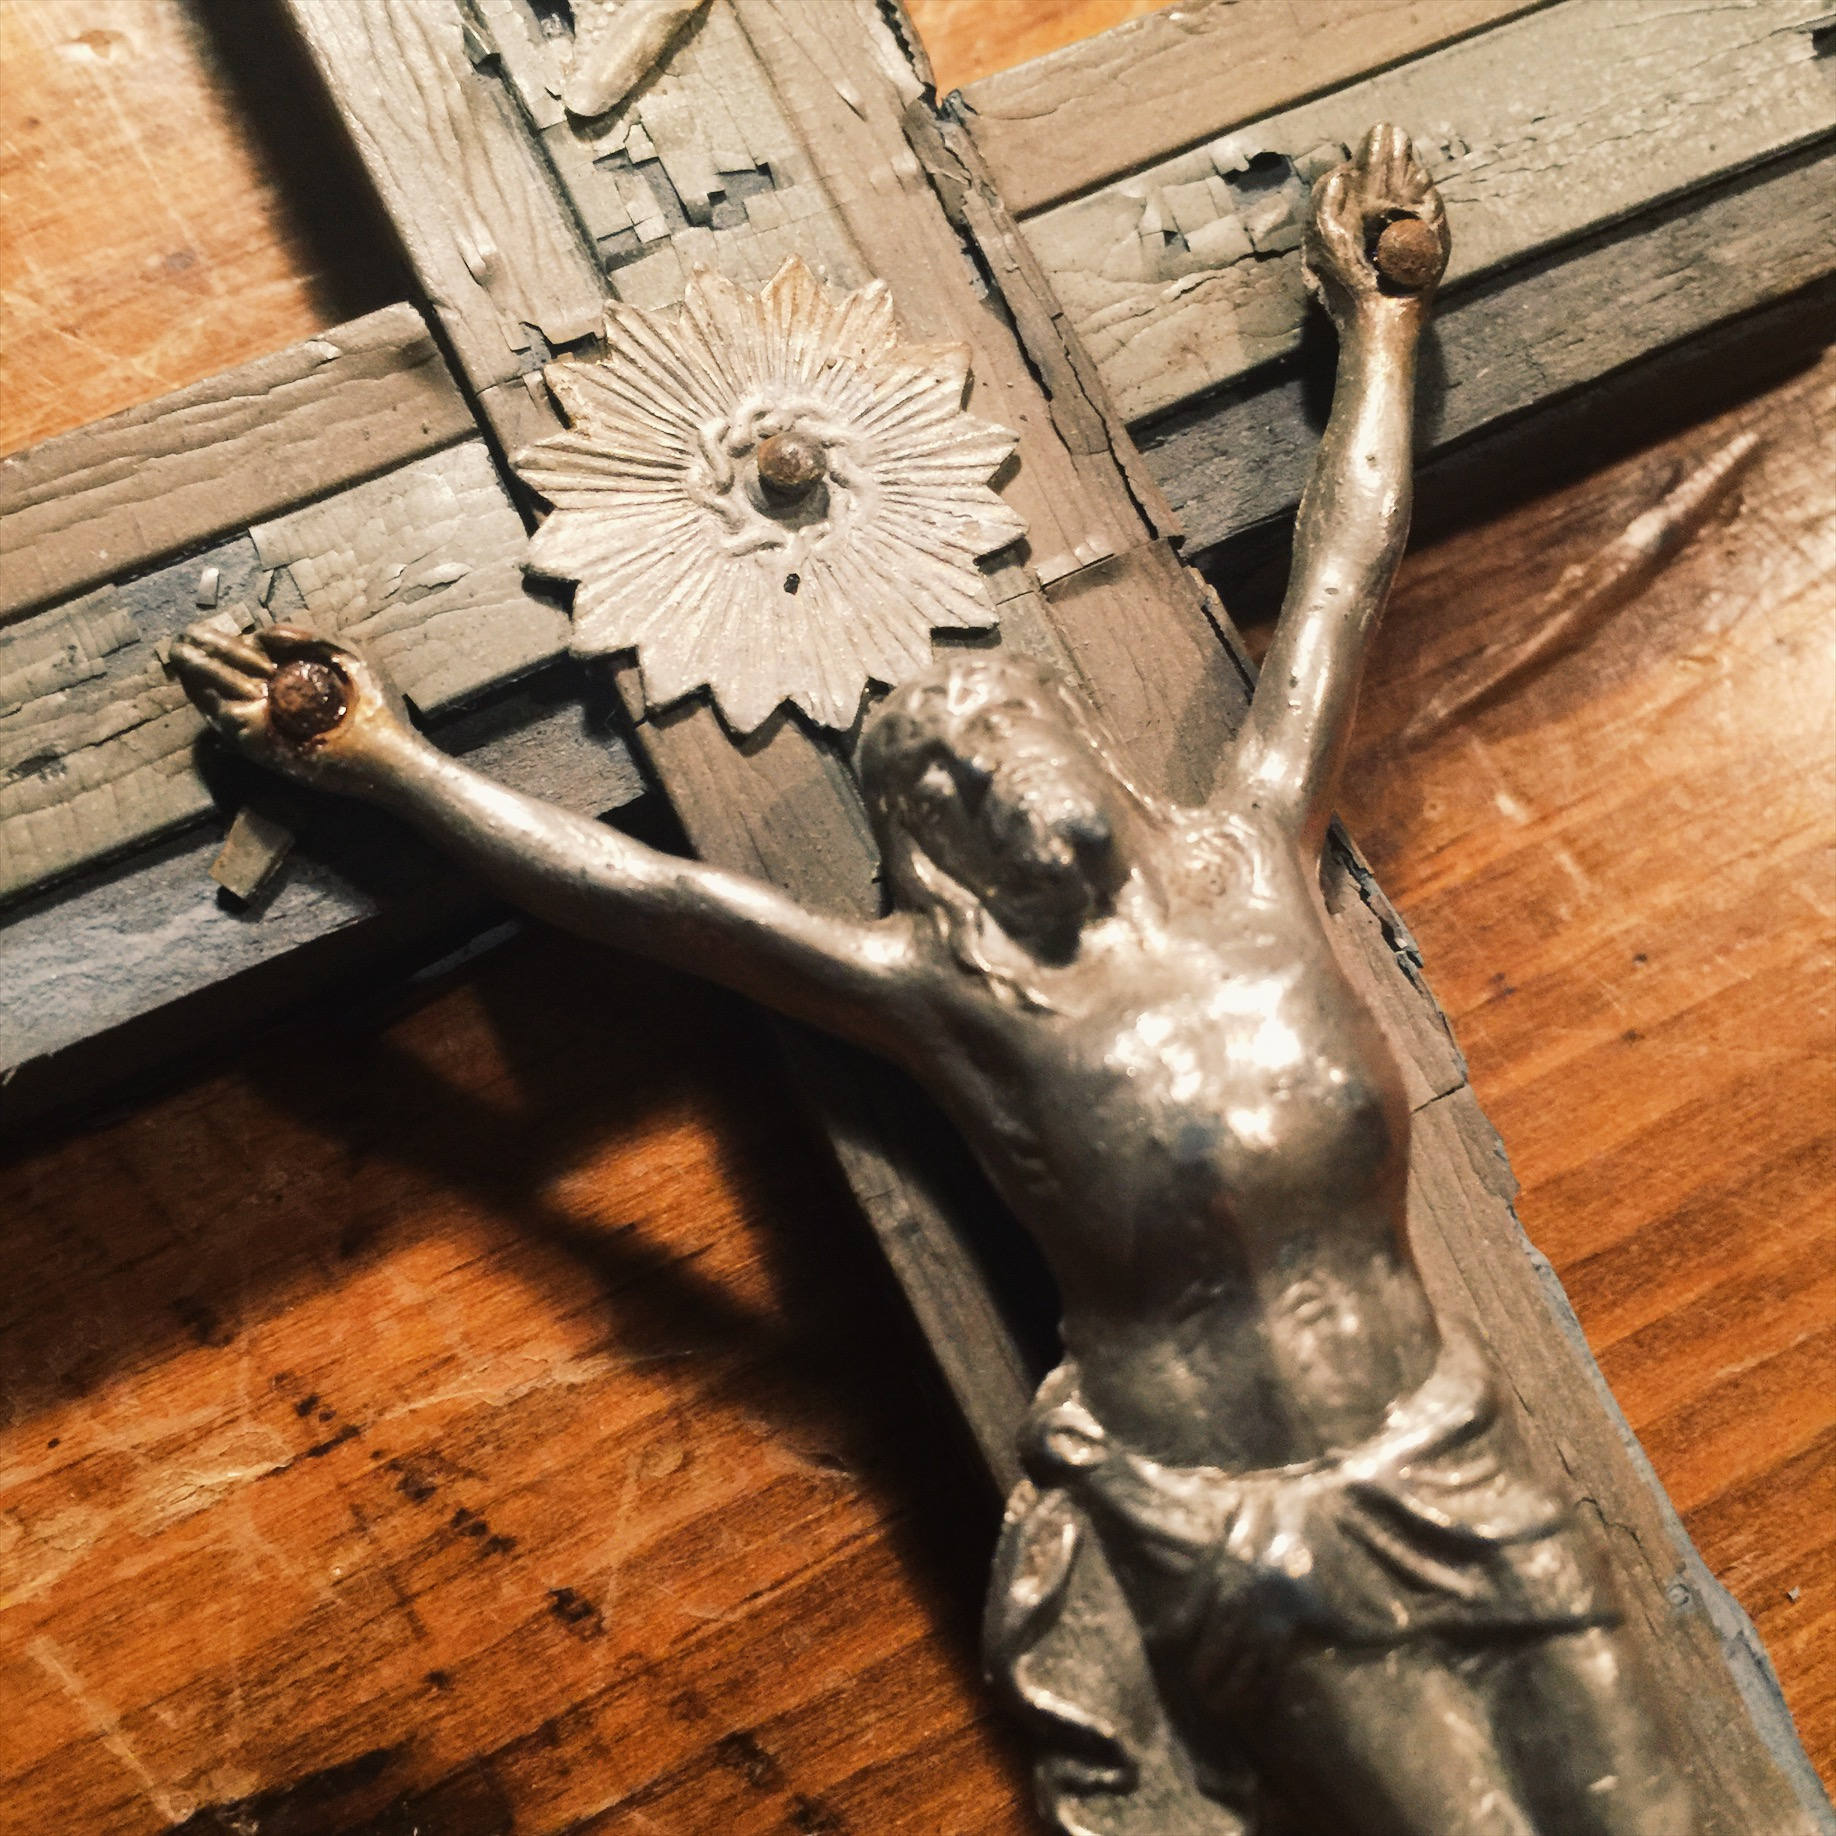 Antique Crucifix with Skull and Crossbones - Inlay Wood - Turn of the Century - Priest Nuns Crucifix - Religious Wall Art - Rare Crucifix